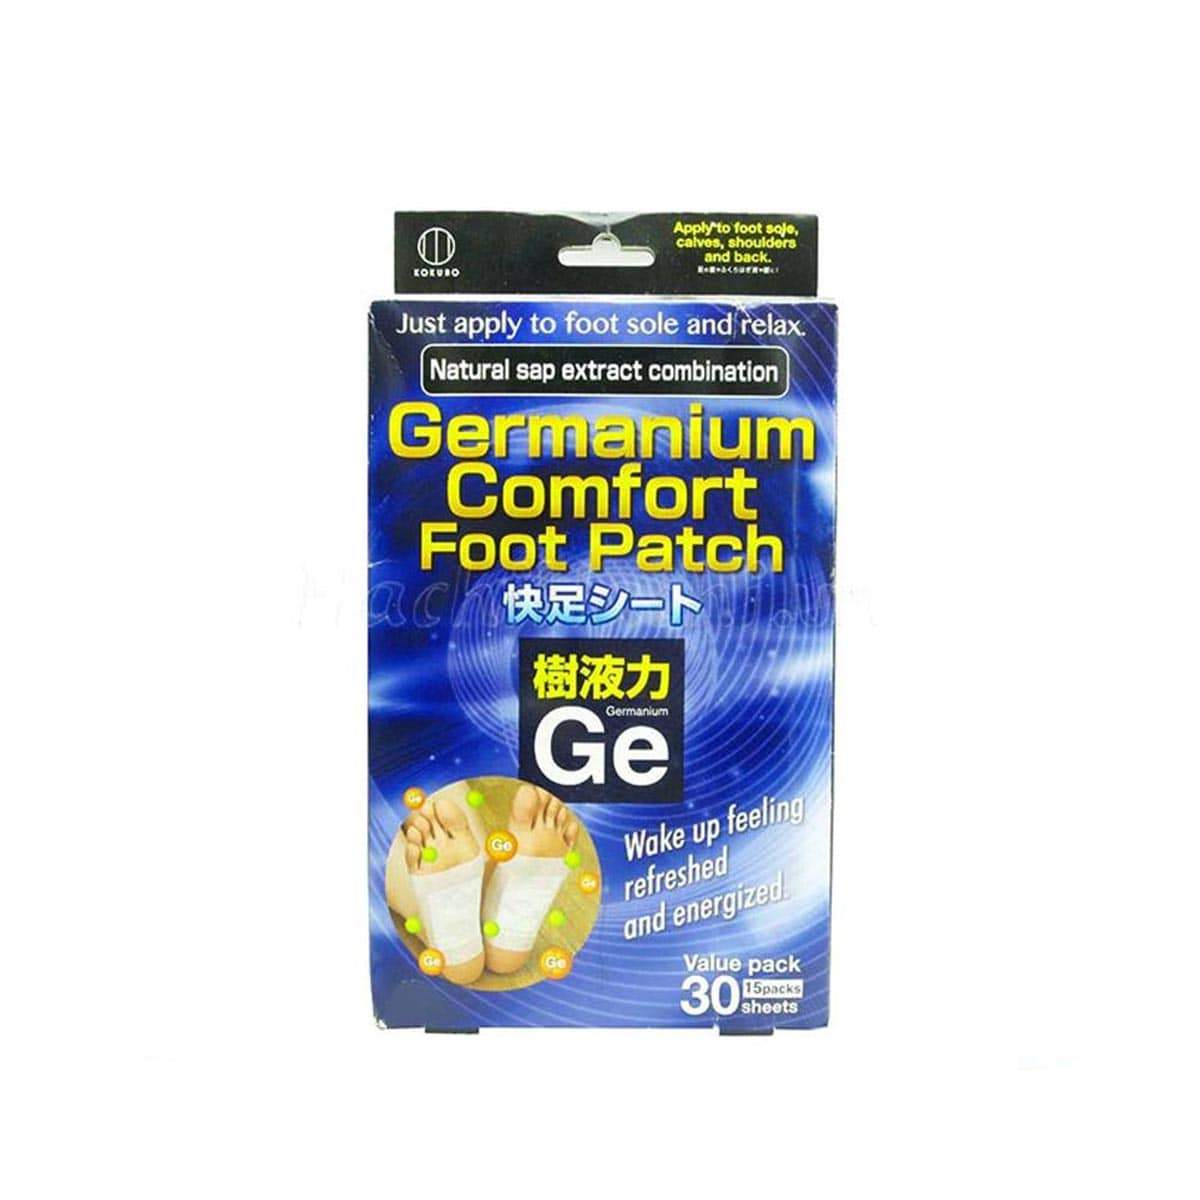 Japanese Comfort Foot Patch Germanium 30 sheets